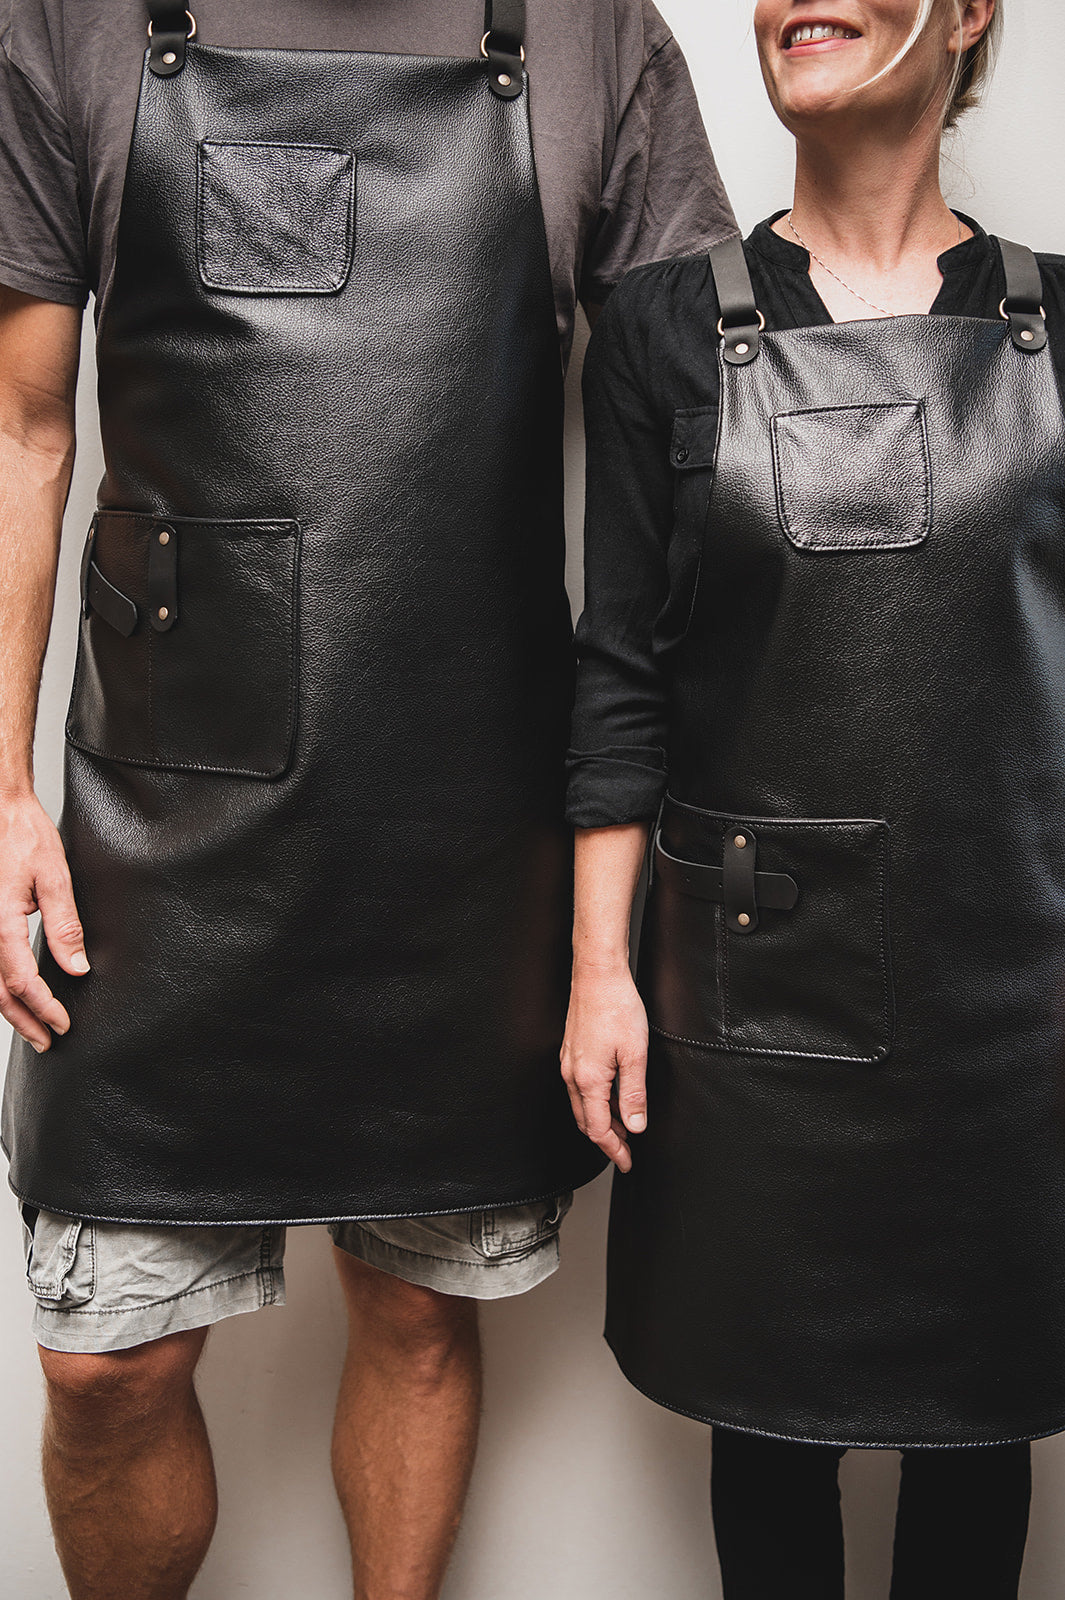 The Stillwater Leather Apron - Shop Leather Handbags, clutches & carryalls online | Made in Australia | Workbelt